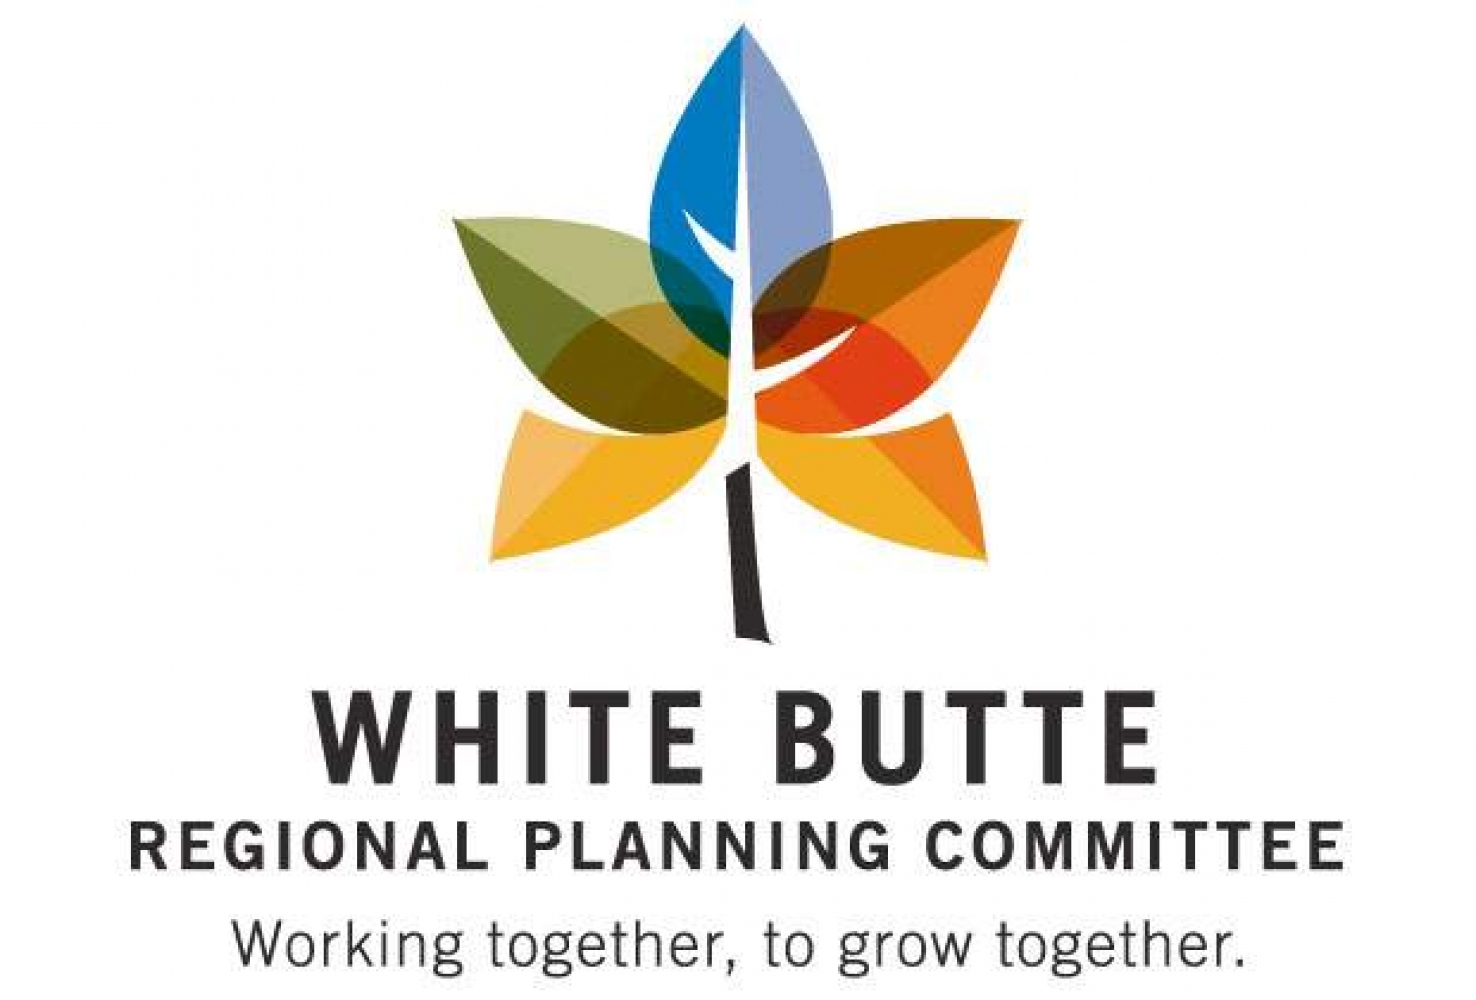 White City Disappointed by Withdrawal of Neighbouring Communities from White Butte Planning Committee